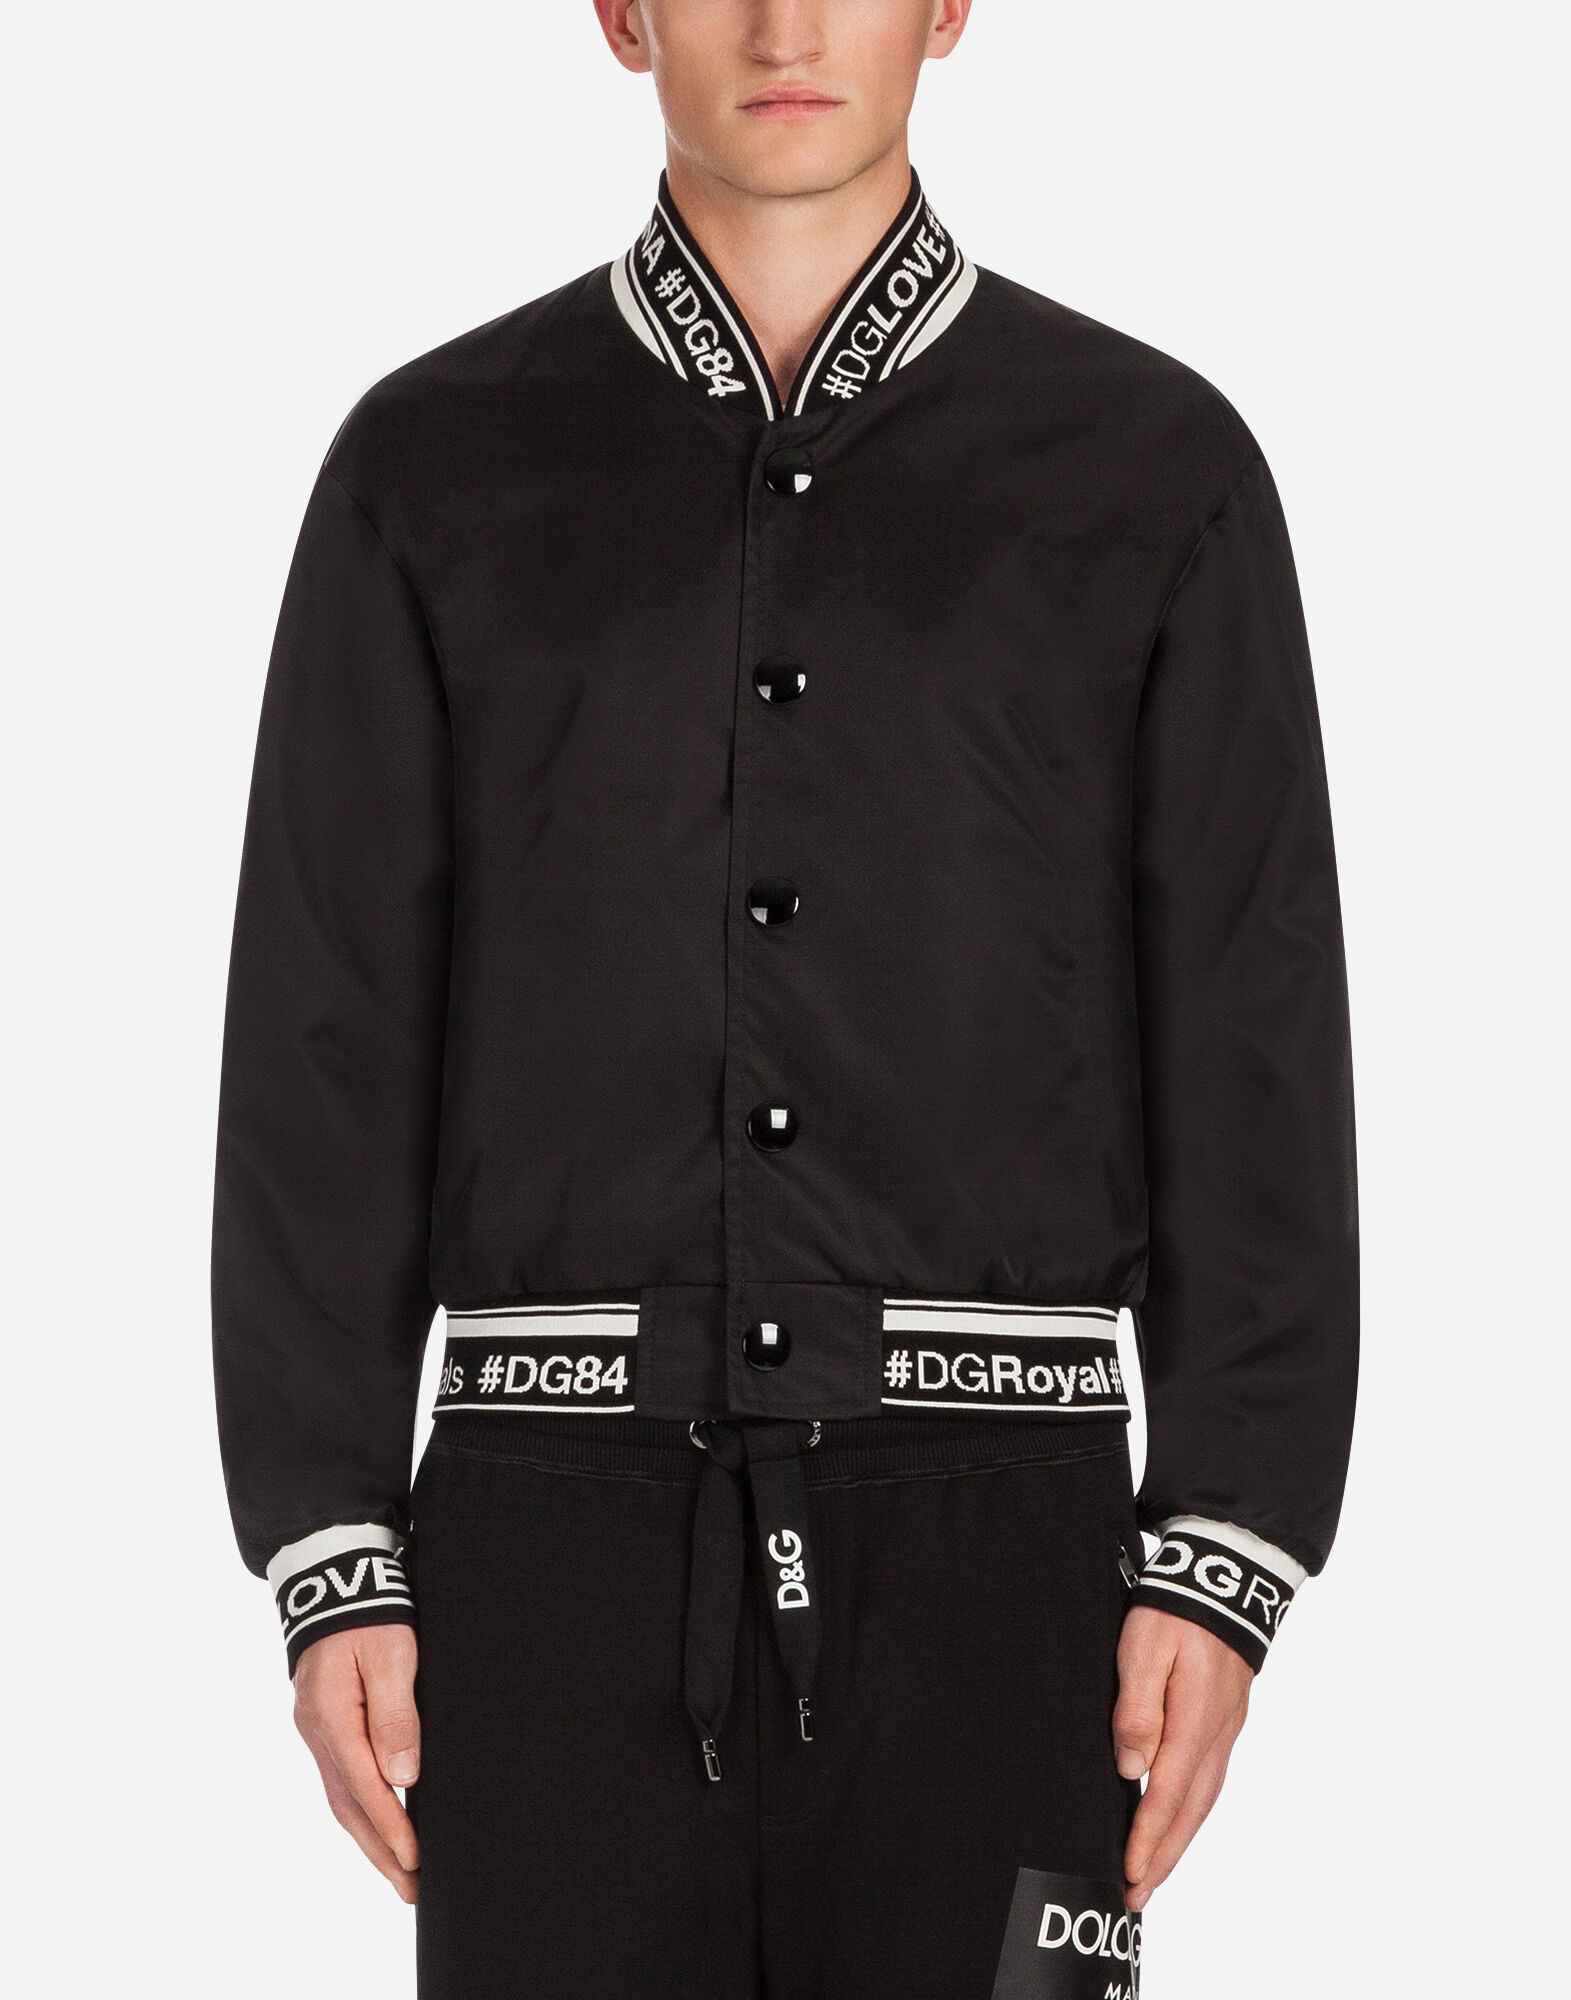 Veste dolce and gabbana homme